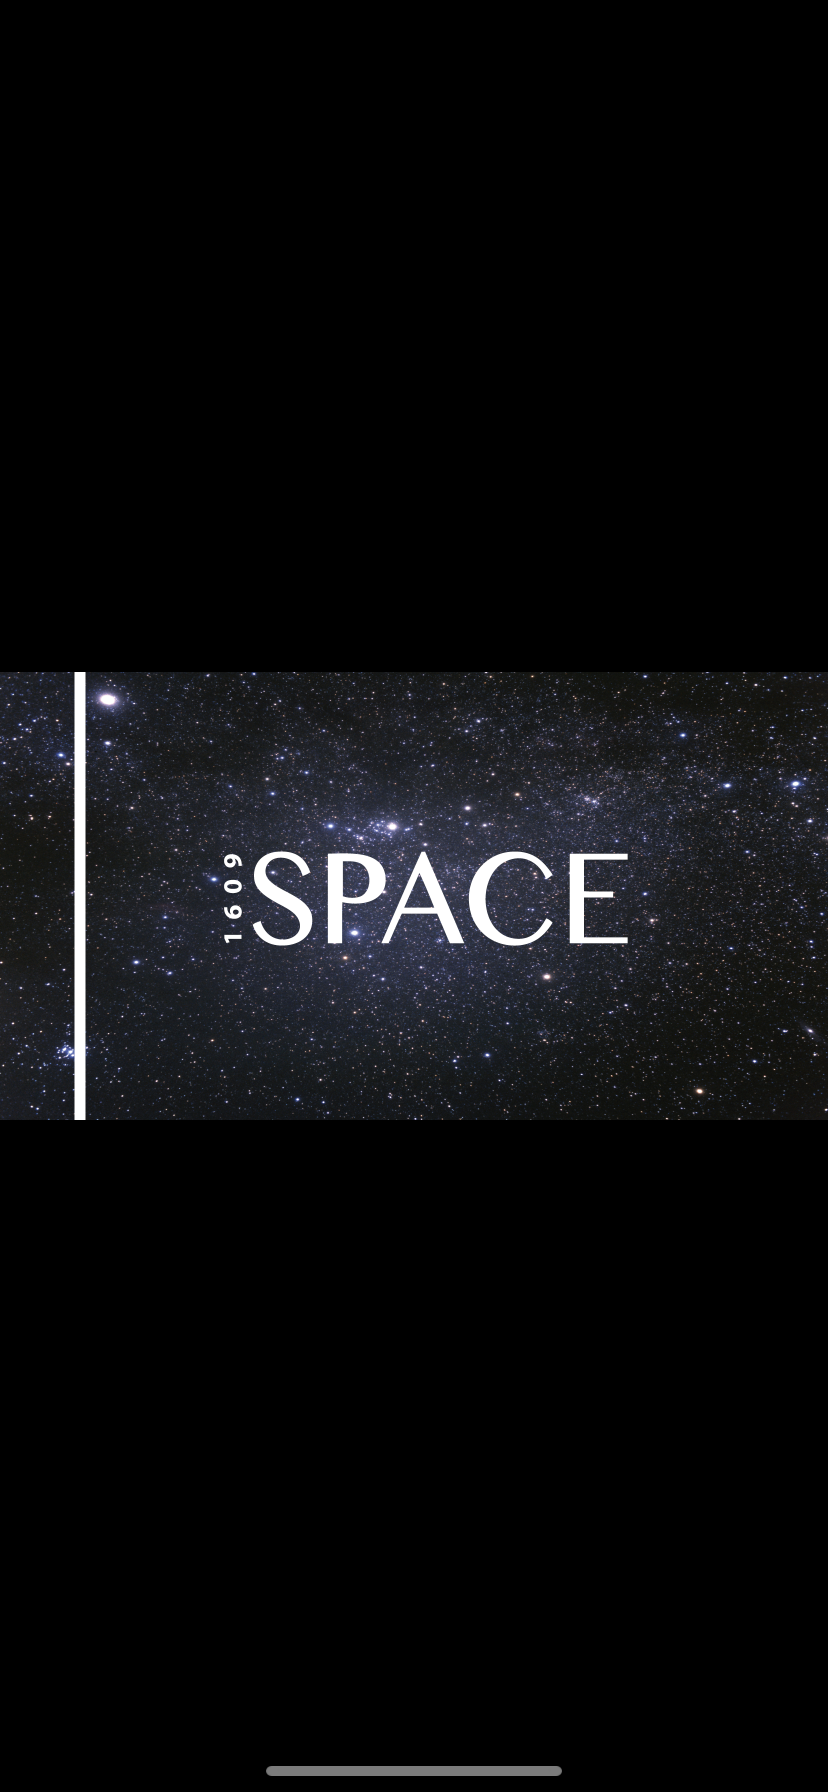 1609 SPACE